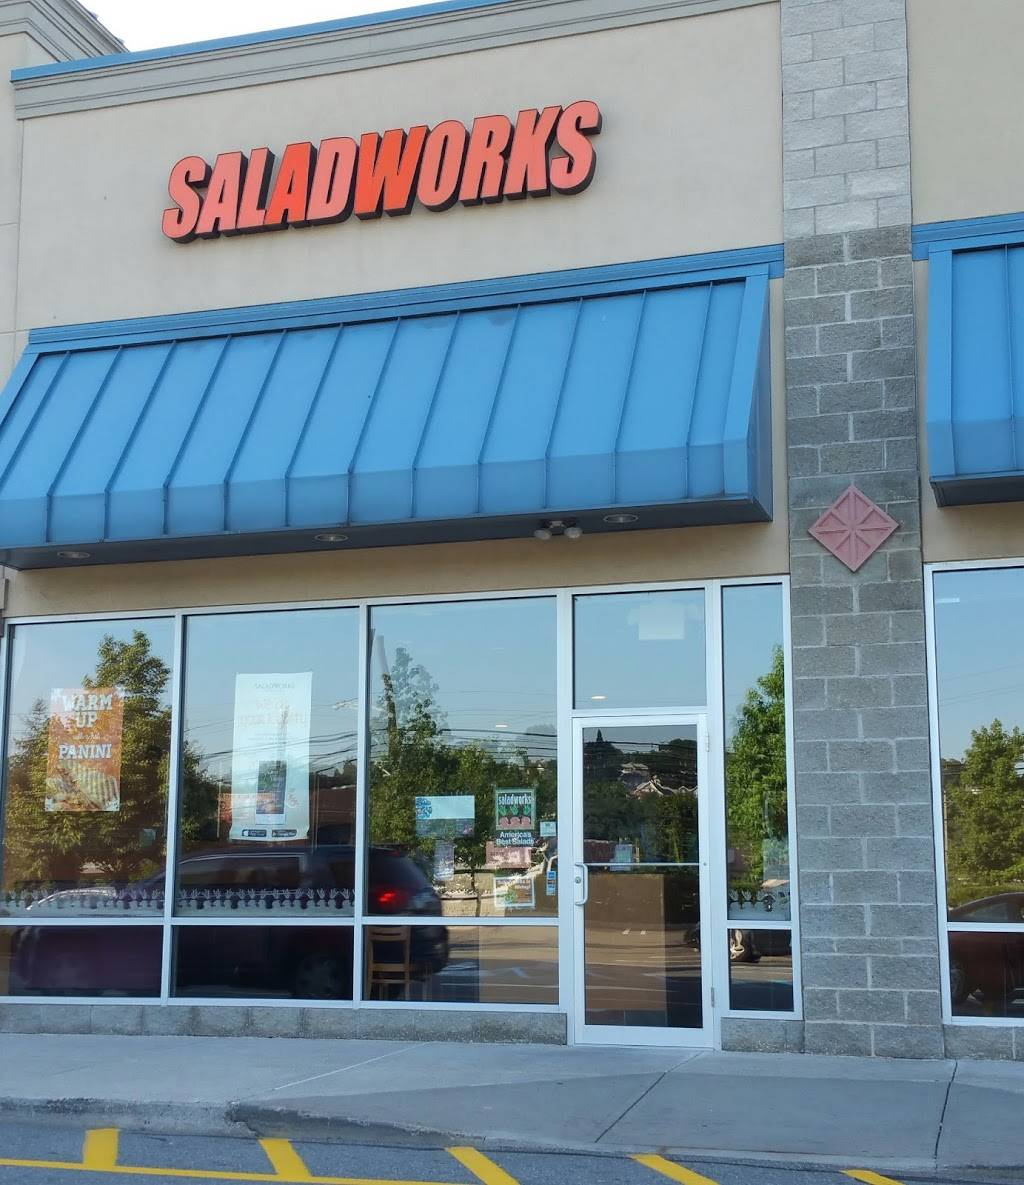 Saladworks | restaurant | 30 Route 17 North, East Rutherford, NJ 07073, USA | 2019398886 OR +1 201-939-8886